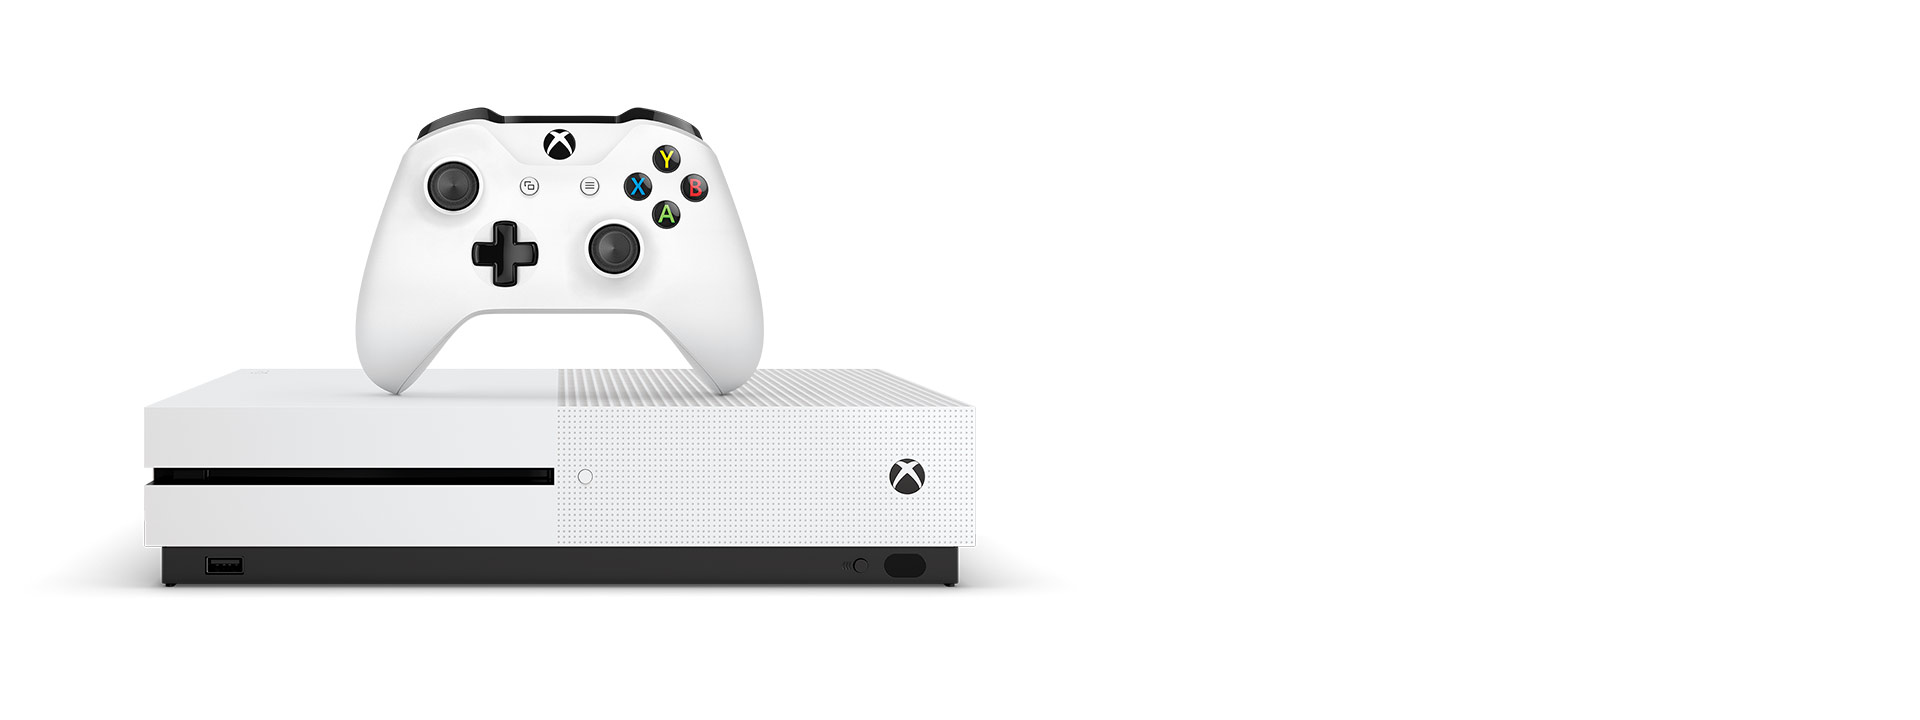 Front view of Xbox One S with White Xbox Wireless Controller